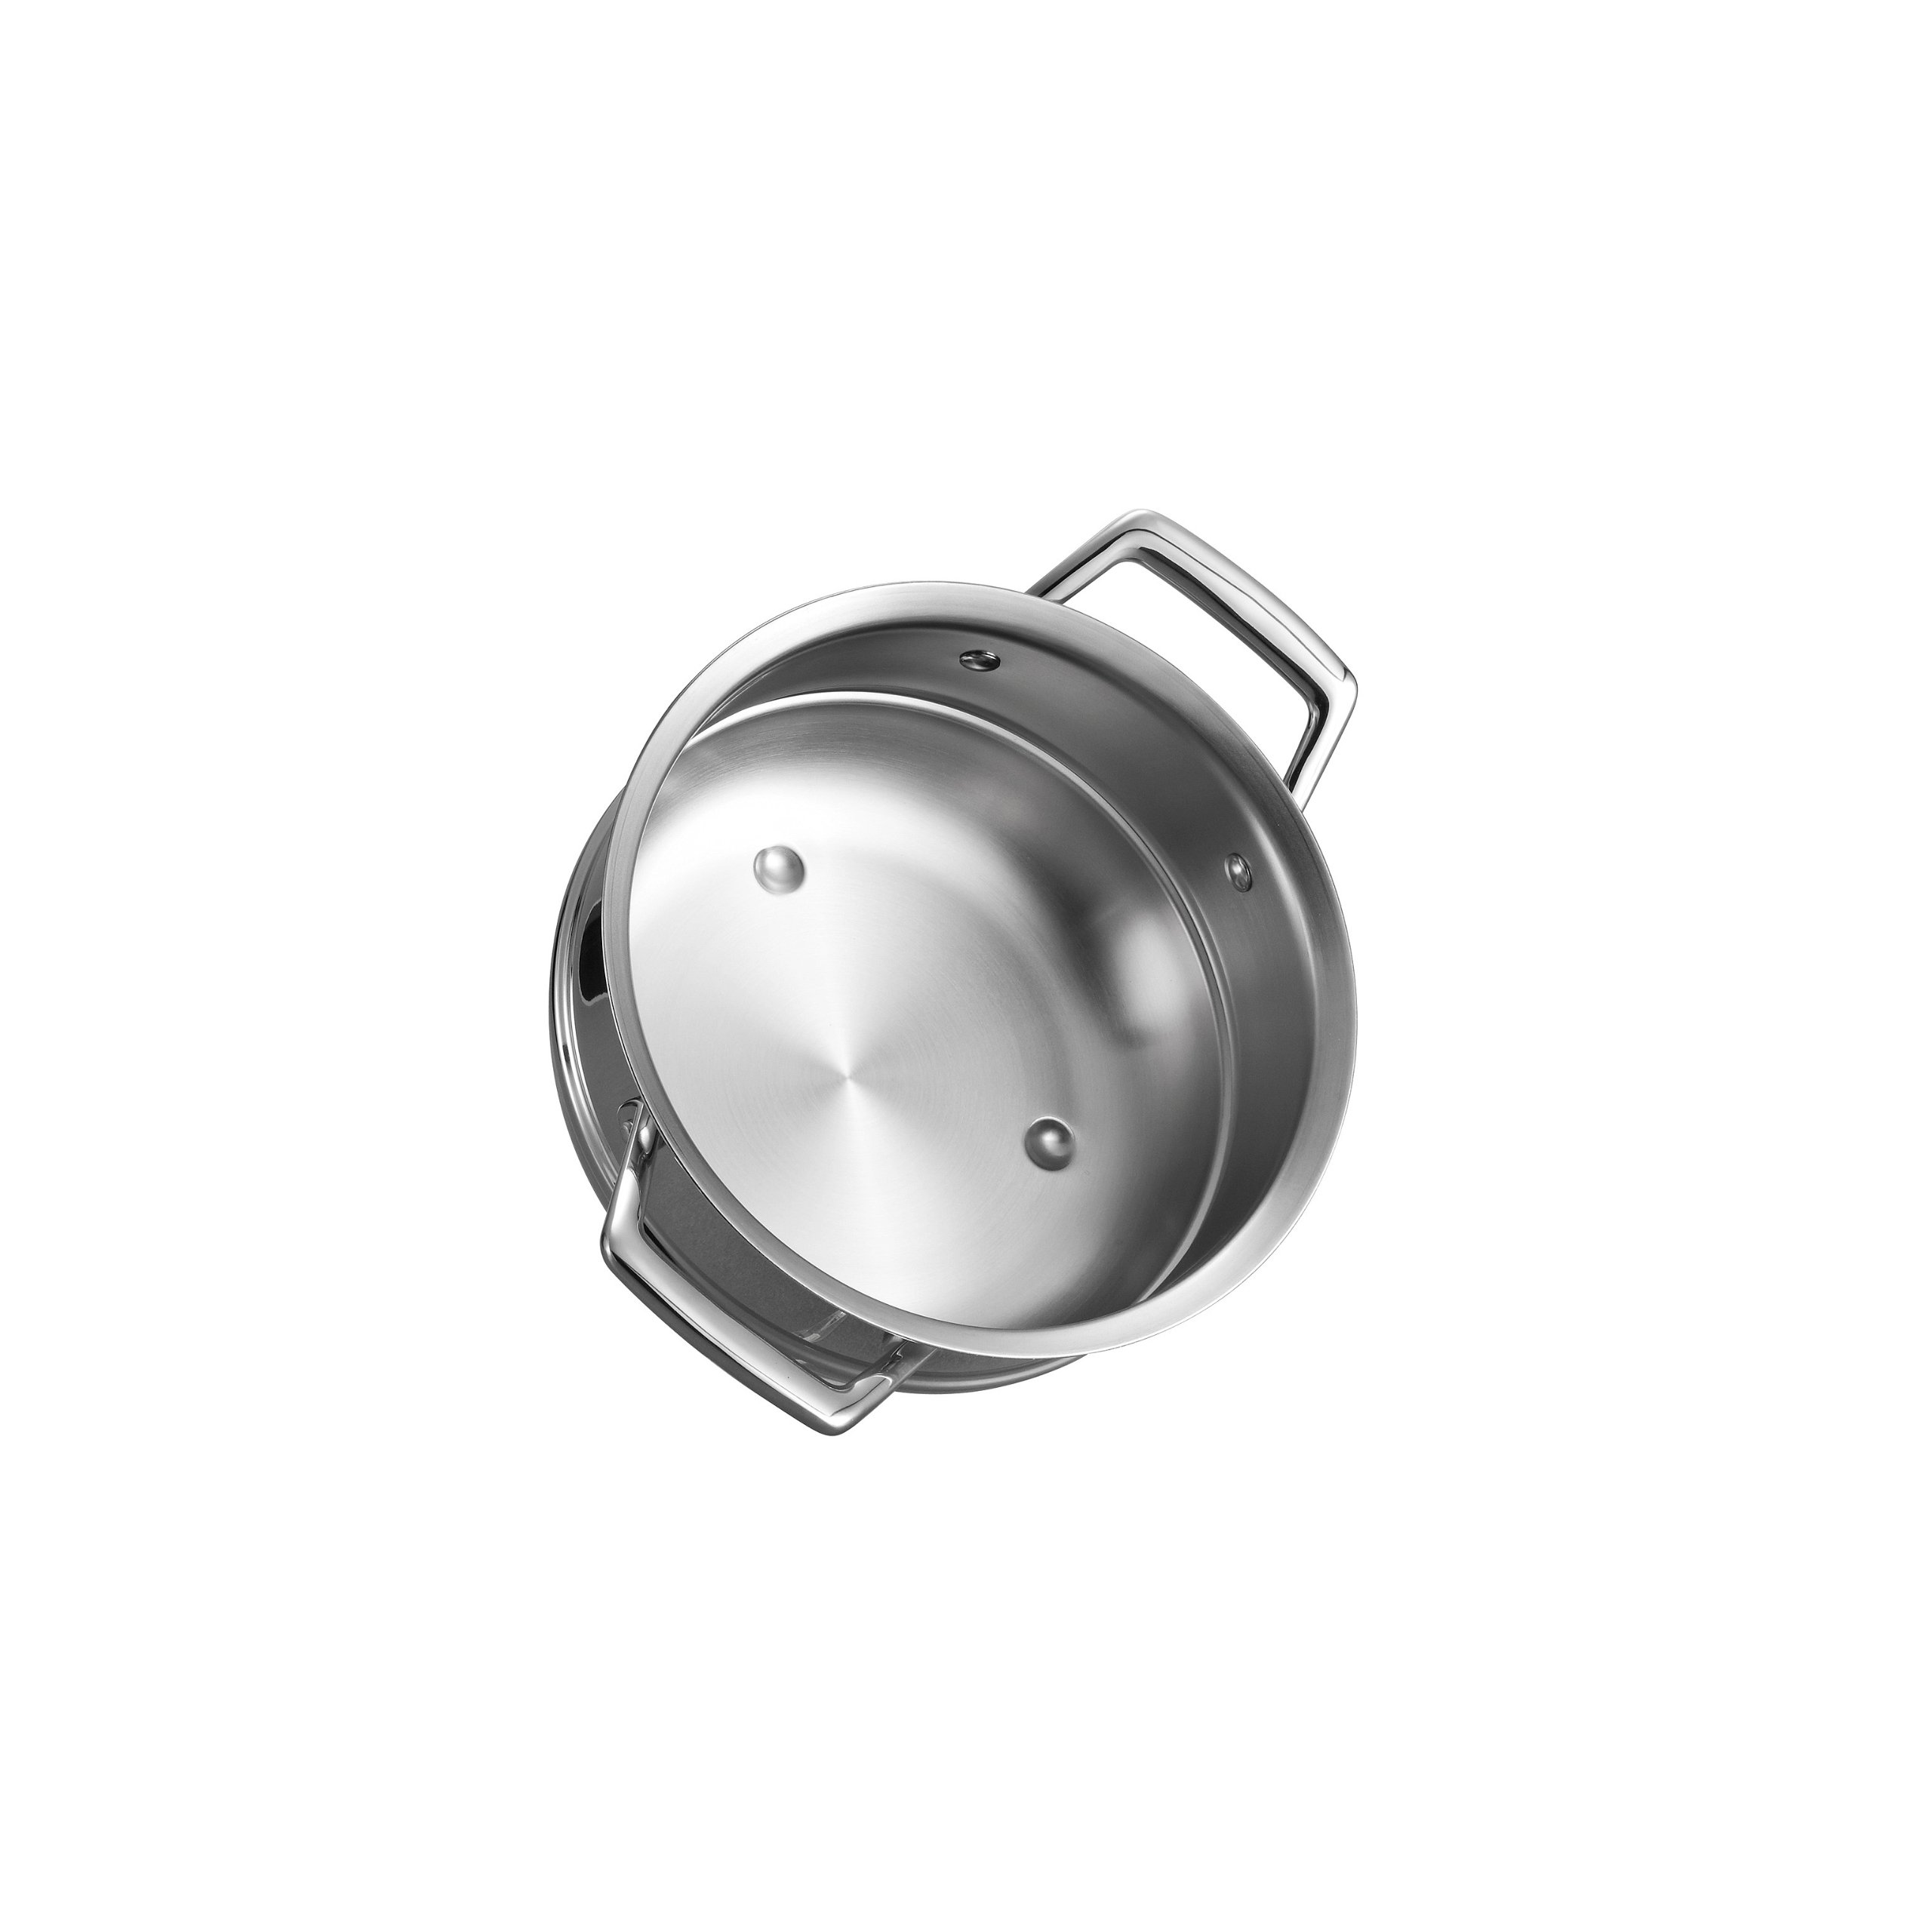 Tramontina 80101/027DS Gourmet Prima Stainless Steel Double Boiler Insert (20cm - Fits 3Qt & 4 Qt Saucepans), 8 inch, Made in Brazil by Tramontina